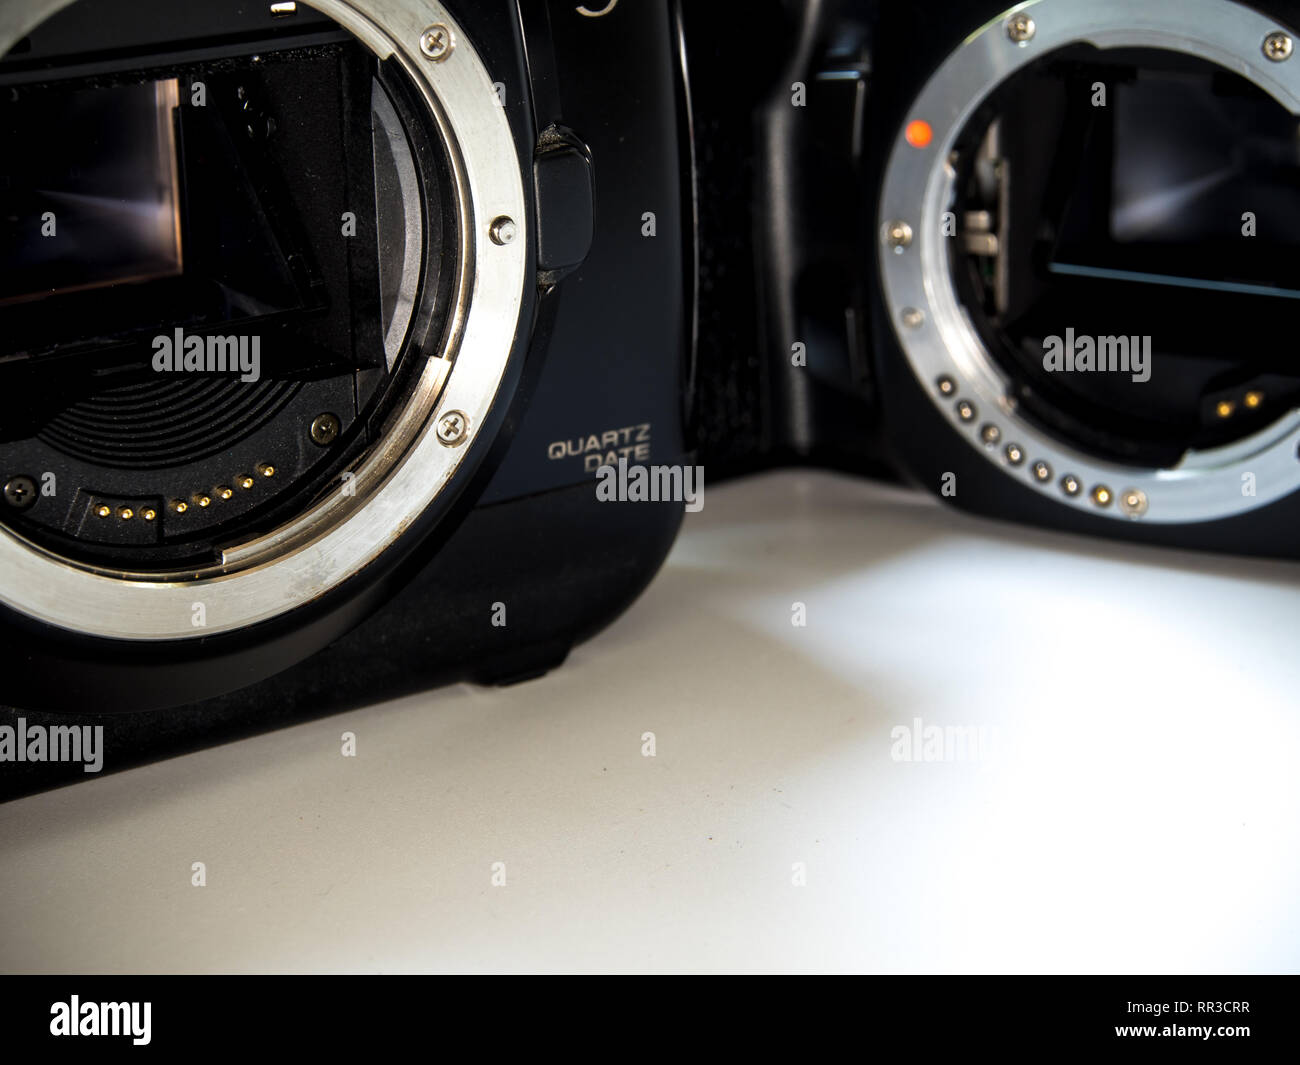 Front view of SLR camera body metal bayonet lens mount C and PK without lens - Stock Image